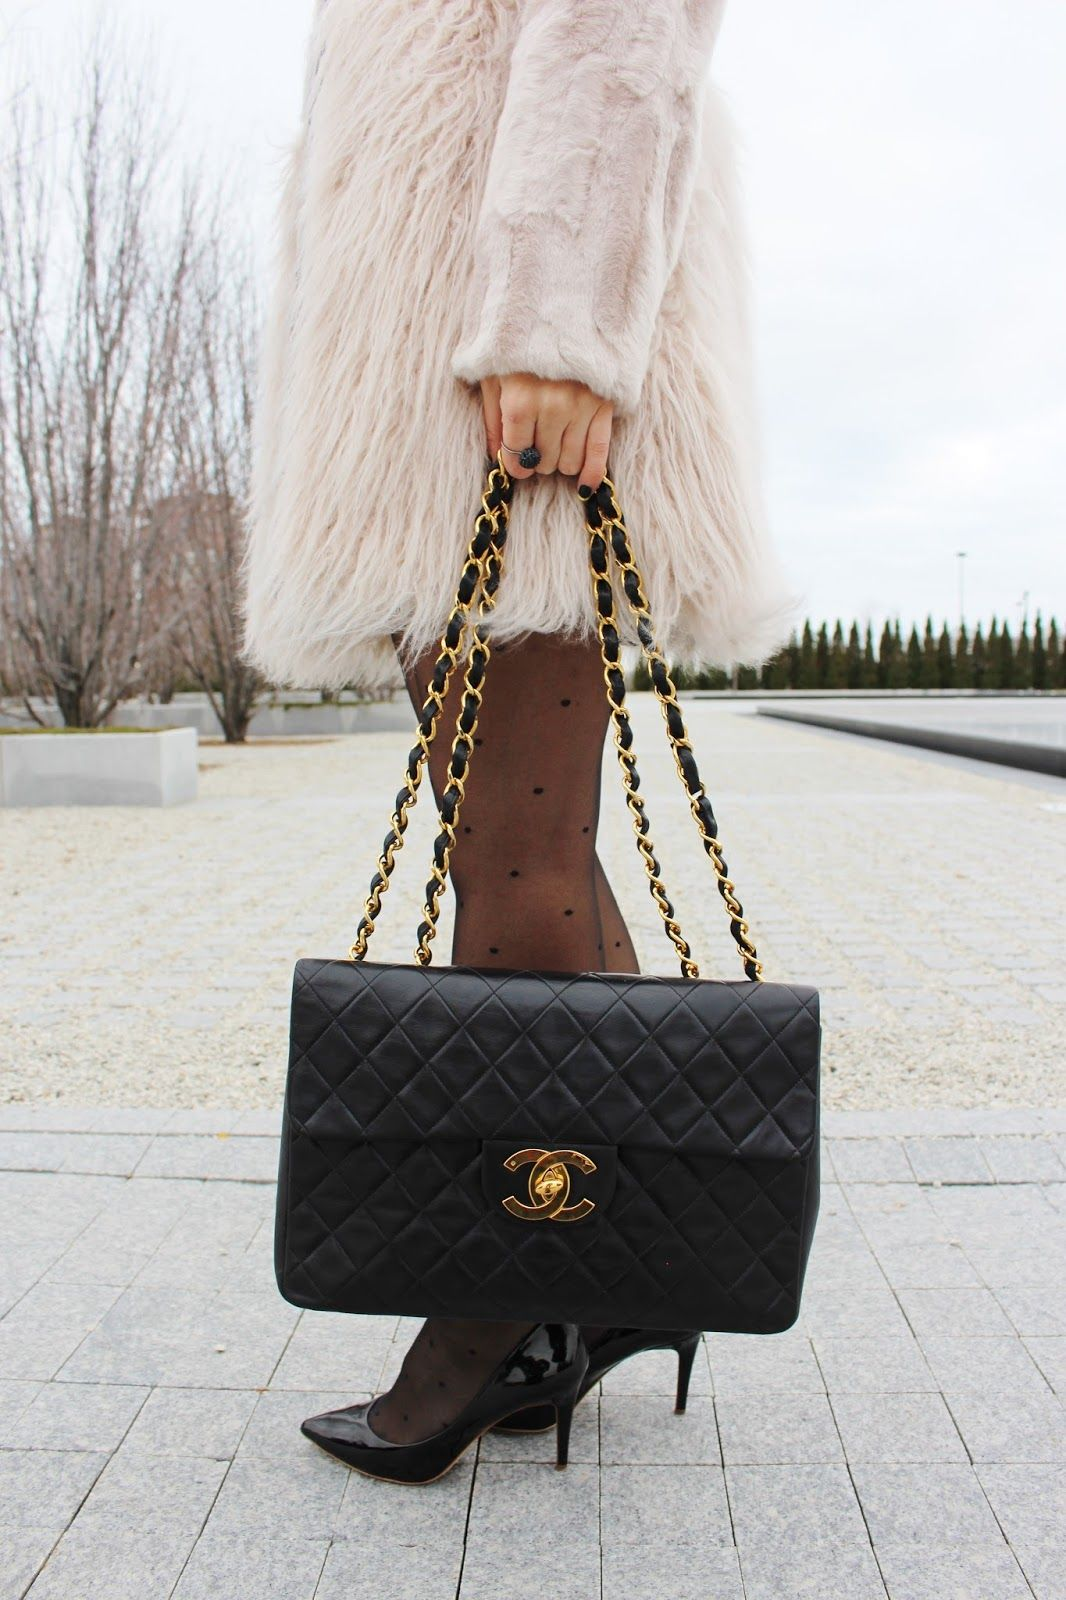 cbee43a936bd What To Wear To a Fancy Dinner Date | S T Y L E | Vintage chanel bag ...